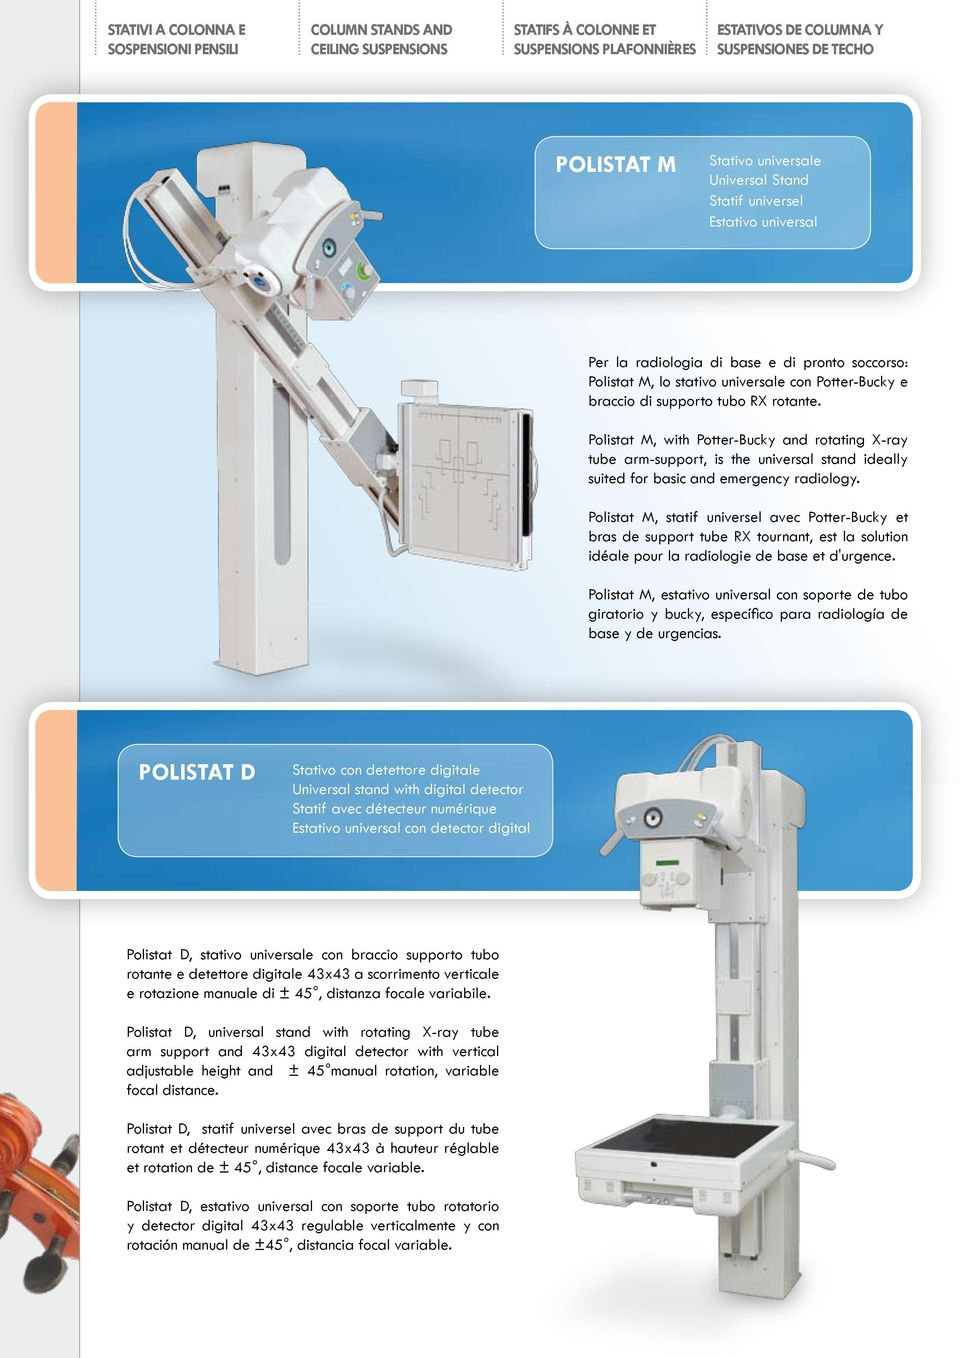 Polistat M, with Potter-Bucky and rotating X-ray tube arm-support, is the universal stand ideally suited for basic and emergency radiology.